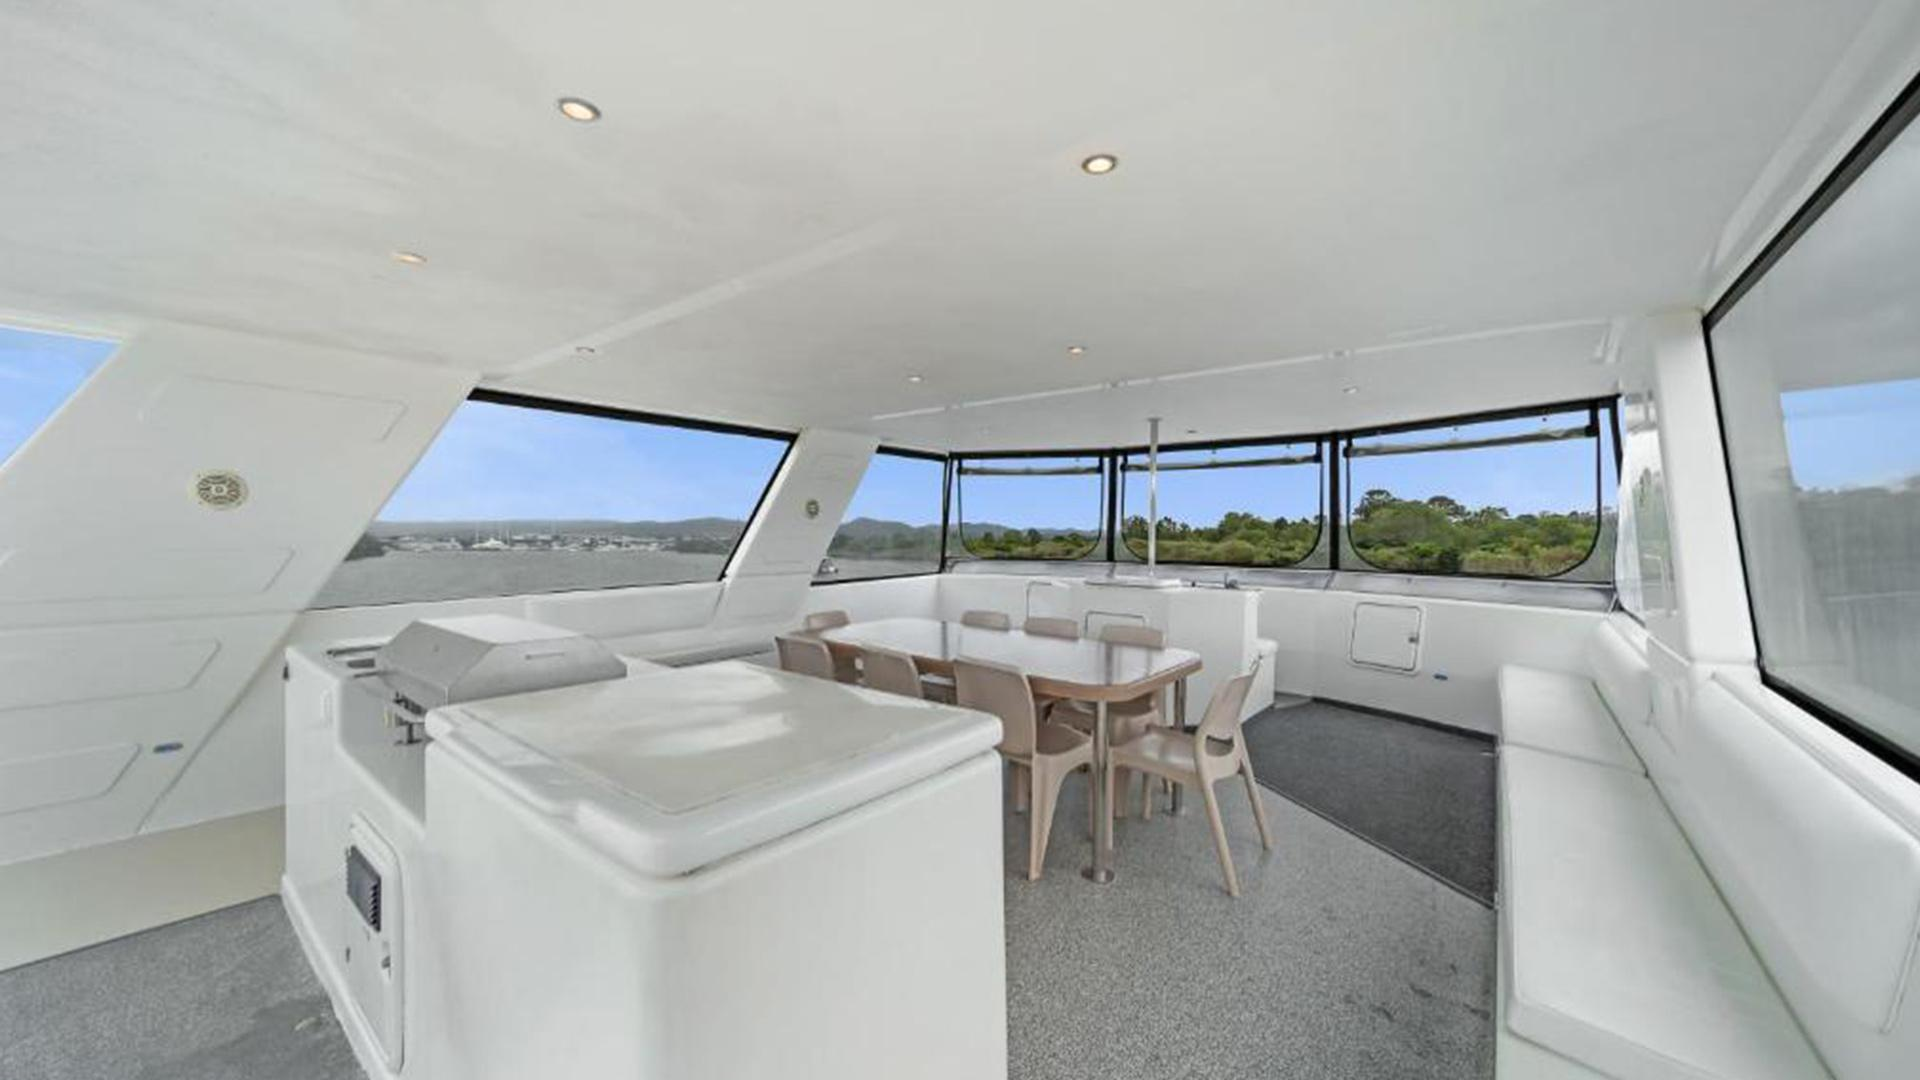 Aegean 60 Spa image 1 at Coomera Houseboats by City of Gold Coast, Queensland, Australia